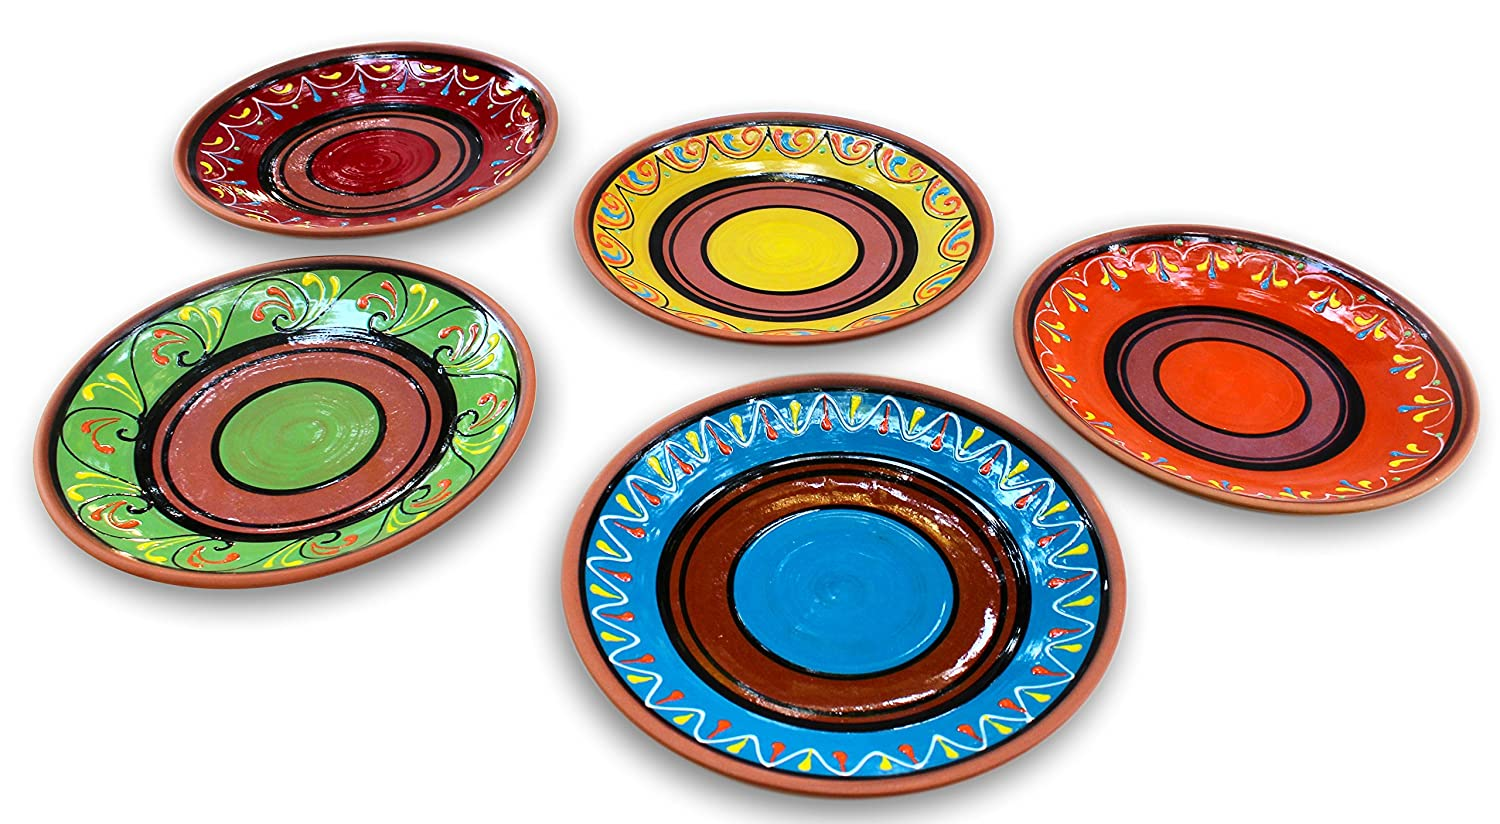 Amazon.com | Terracotta Small Dinner Plates Set of 5 (European Size) - Hand Painted From Spain Dinner Plates  sc 1 st  Amazon.com & Amazon.com | Terracotta Small Dinner Plates Set of 5 (European Size ...